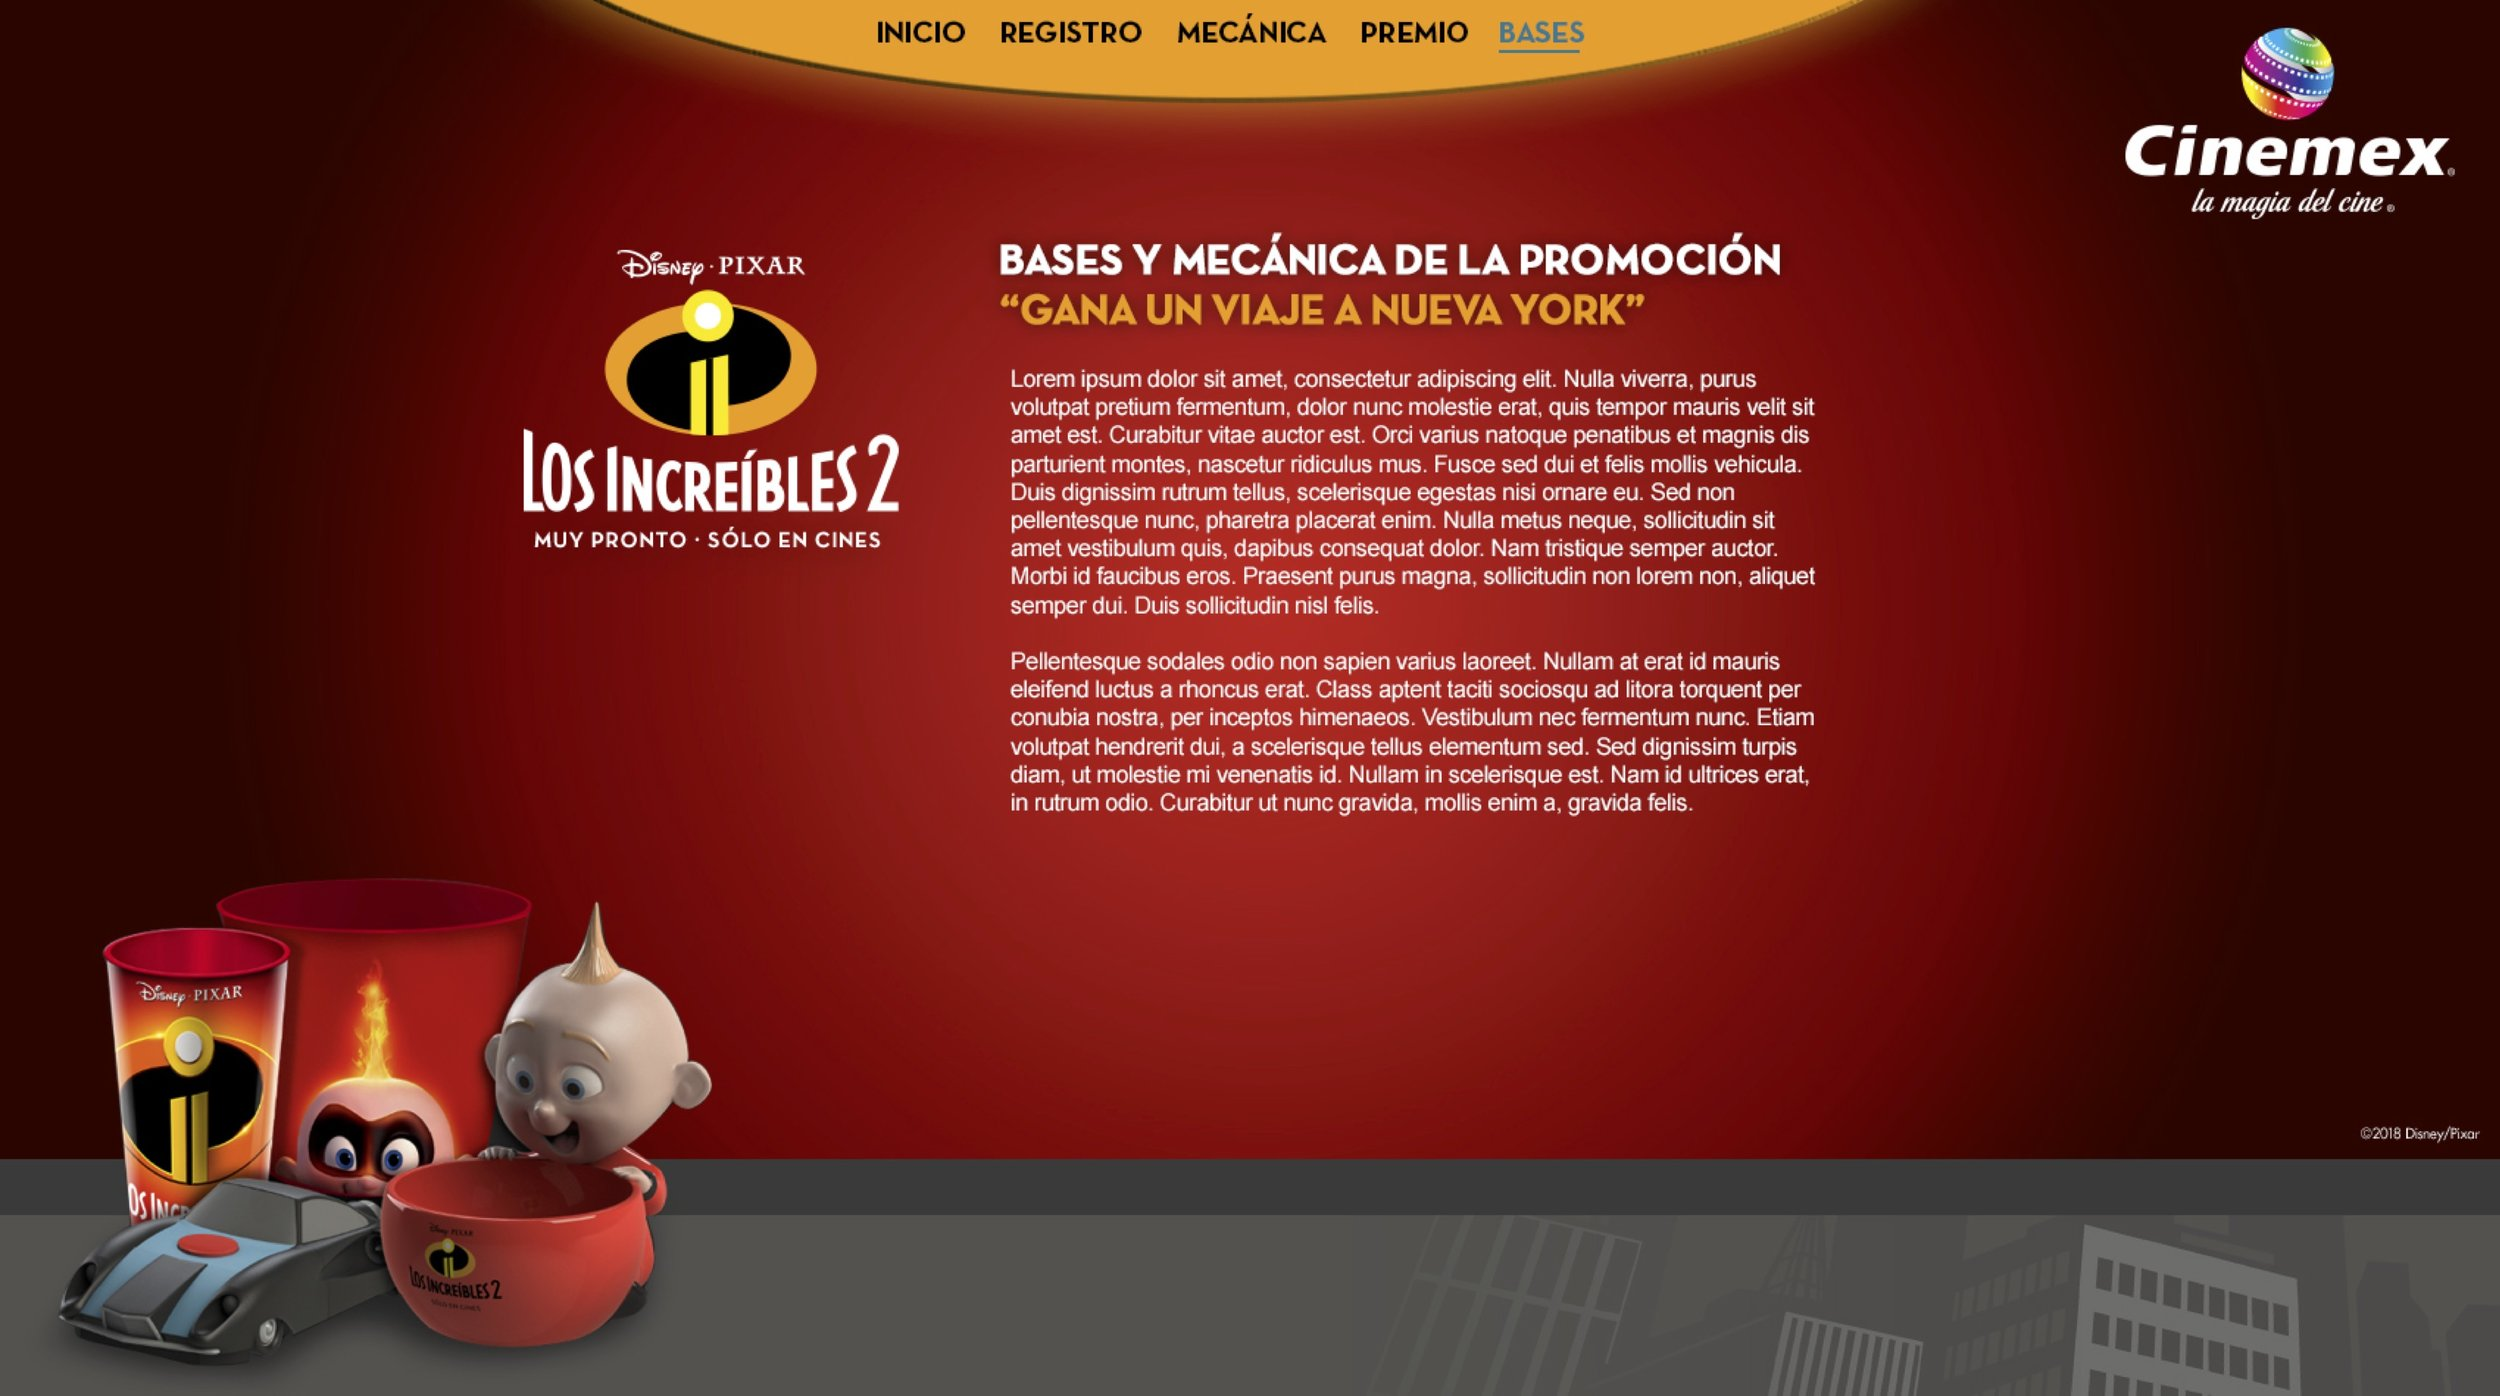 CIN064M_Increibles2_Cinemex_Micrositio_Diseno_w19_V1_5.jpg